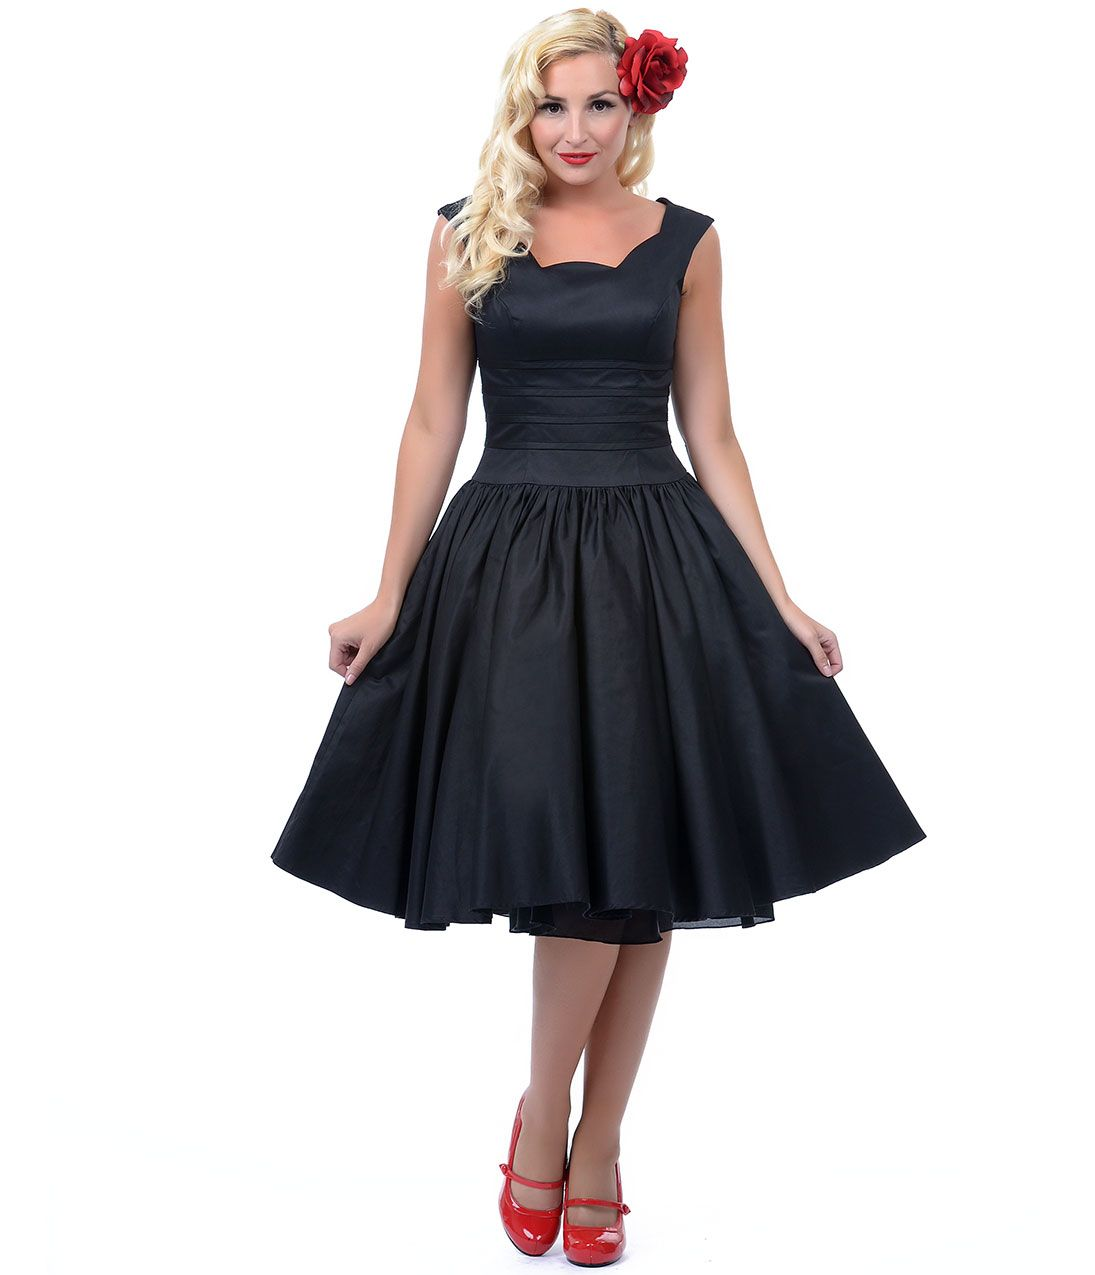 23813e2523e Unique Vintage Roman Holiday Black Scalloped Neck Swing Dress  uniquevintage   prom